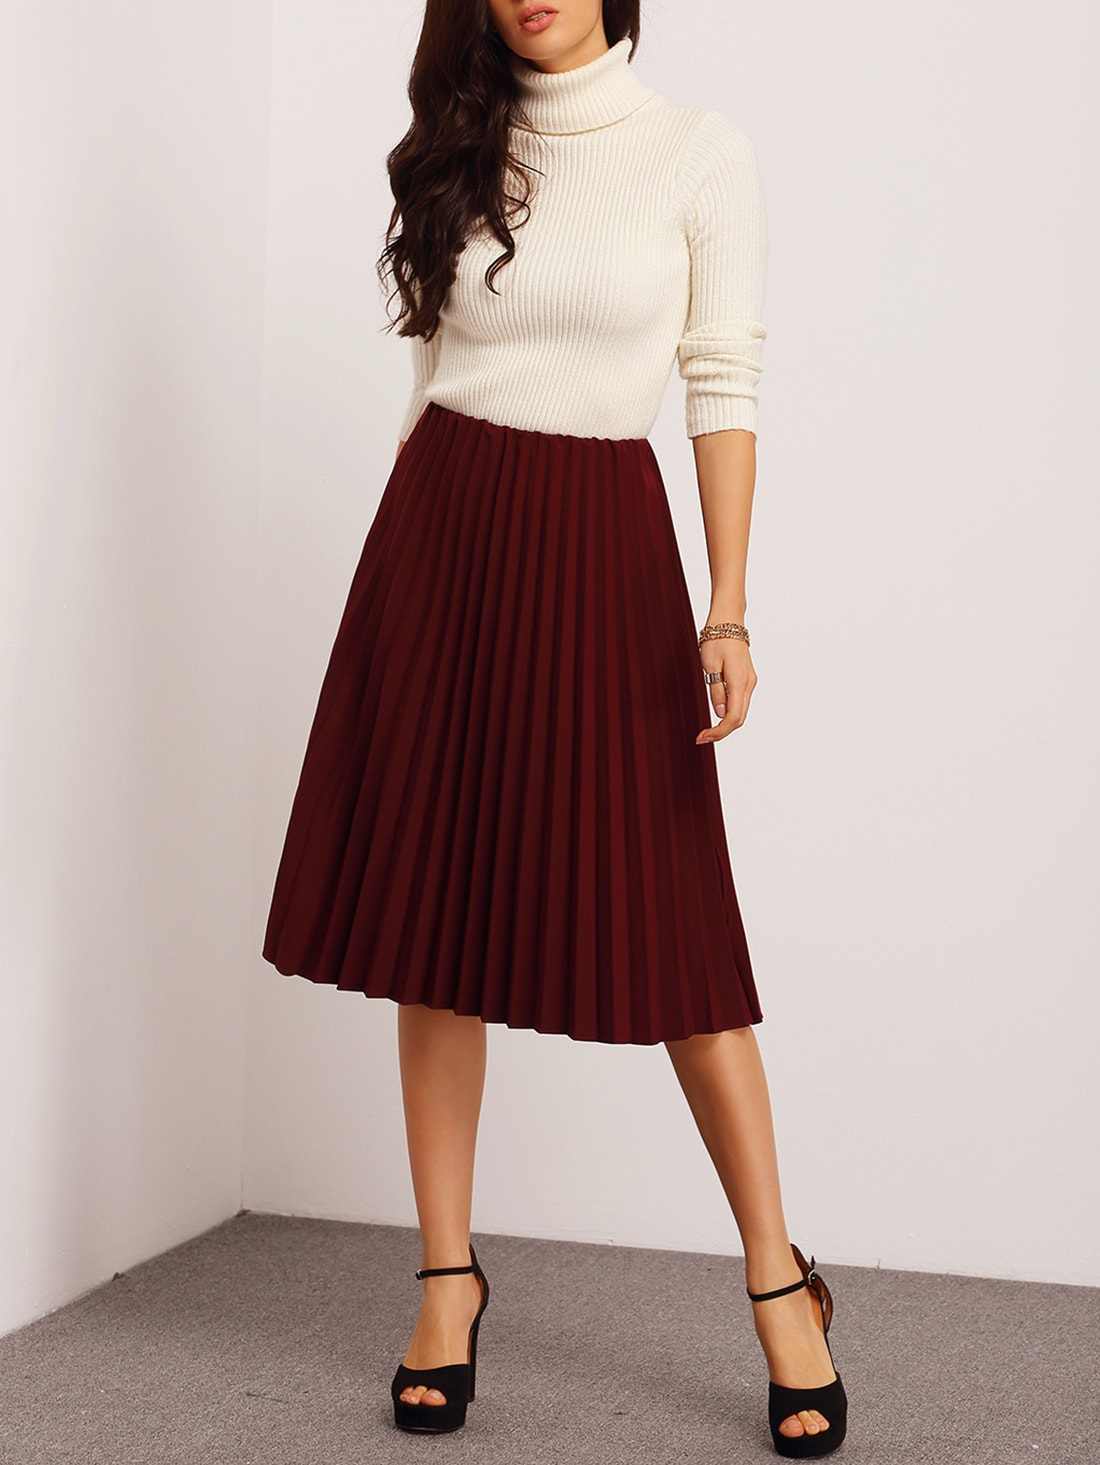 Top quality Burgundy Pleated skirt Maxi Skirt Long Skirt short skirt Maxi Dress chiffon skirt long beach skirt 12 colors ★ Material: Top quality Chiffon, fully lined with quality fabric. ★ Measurements: High stretch elastic waist from 62 cm / to cm/ The waist is perfectly.